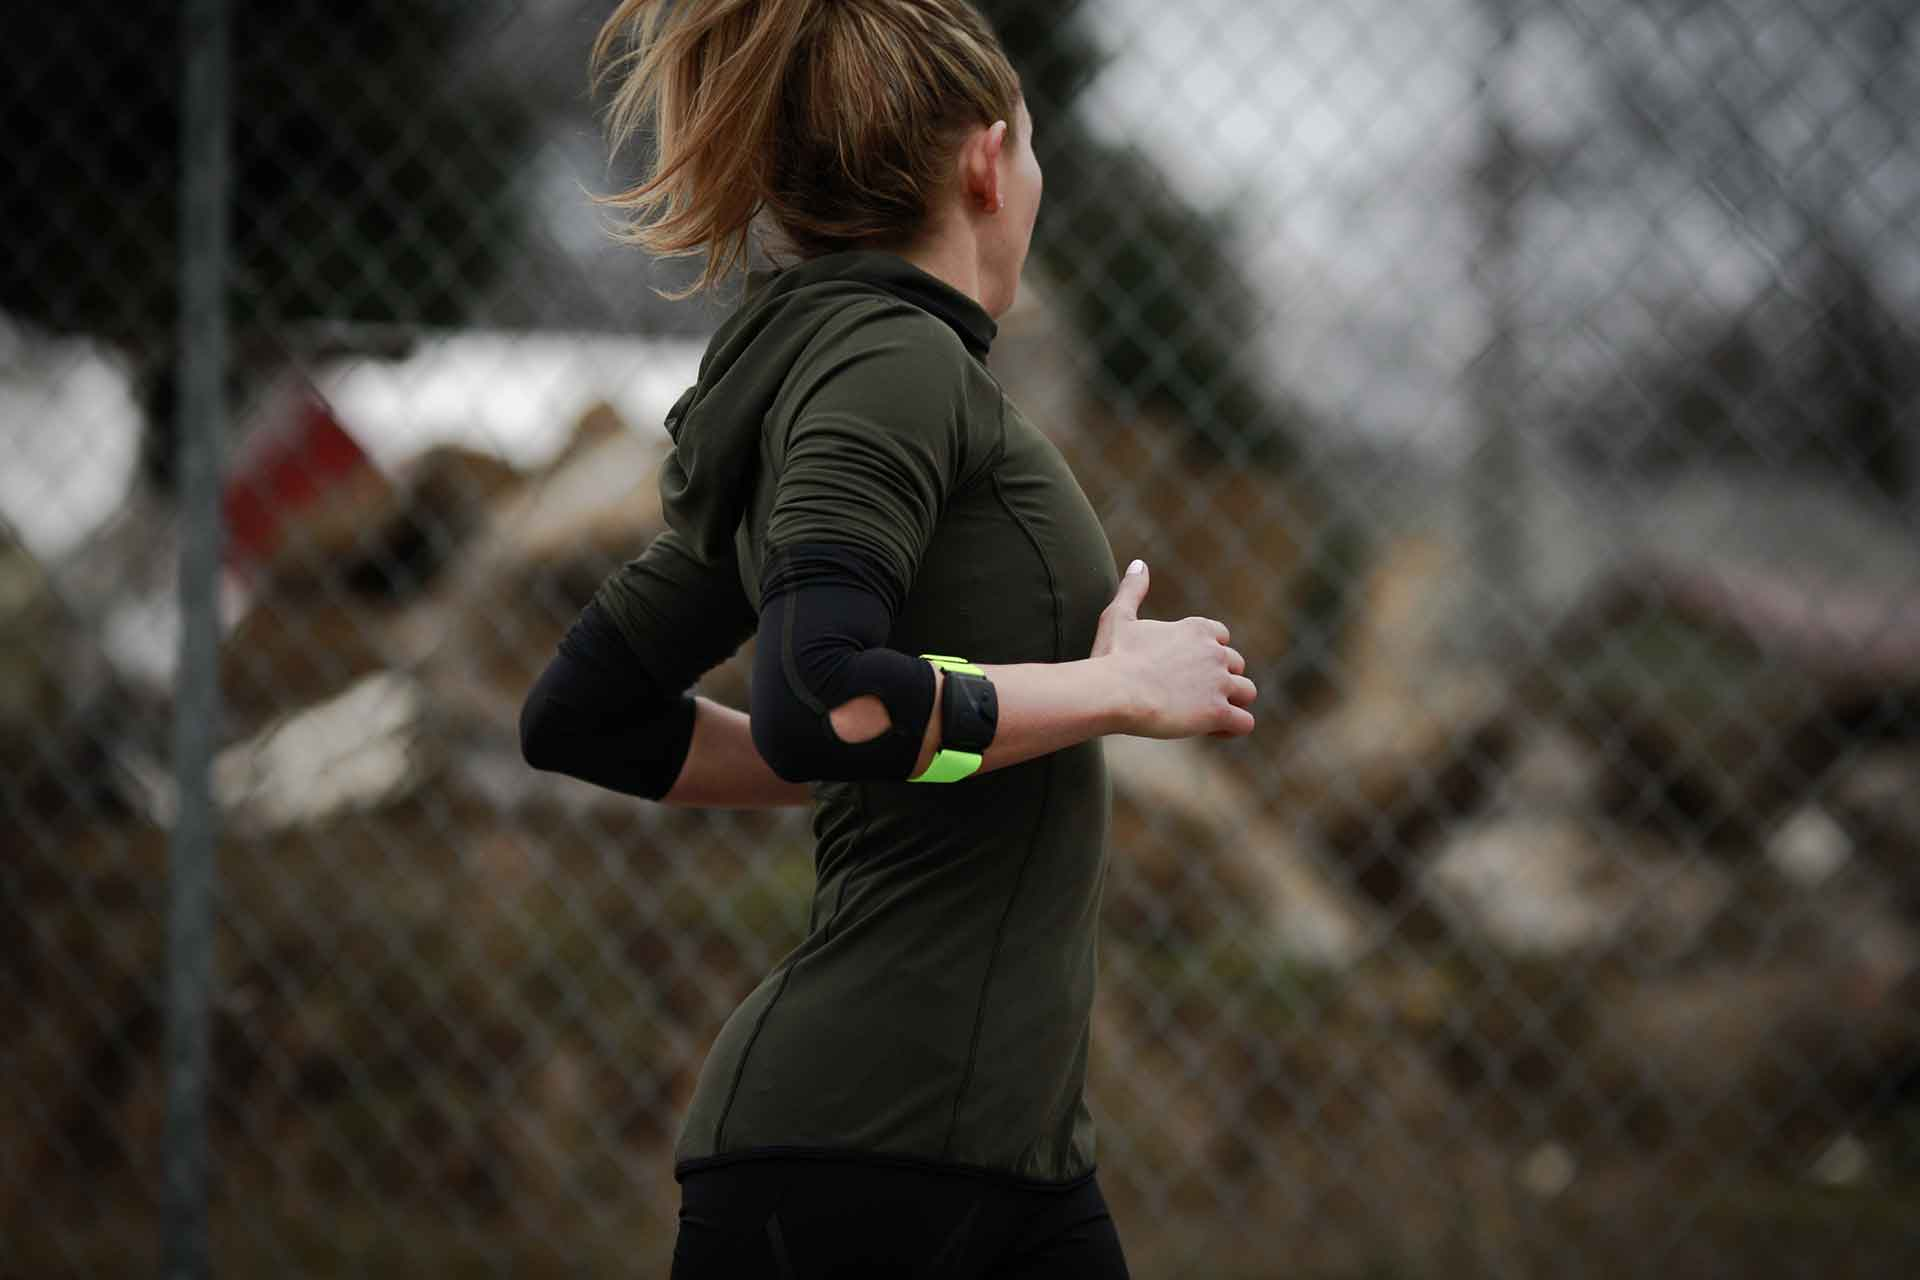 Scosche's New Rhythm24 Armband Measures Heart Rate on Land and in the Water 6